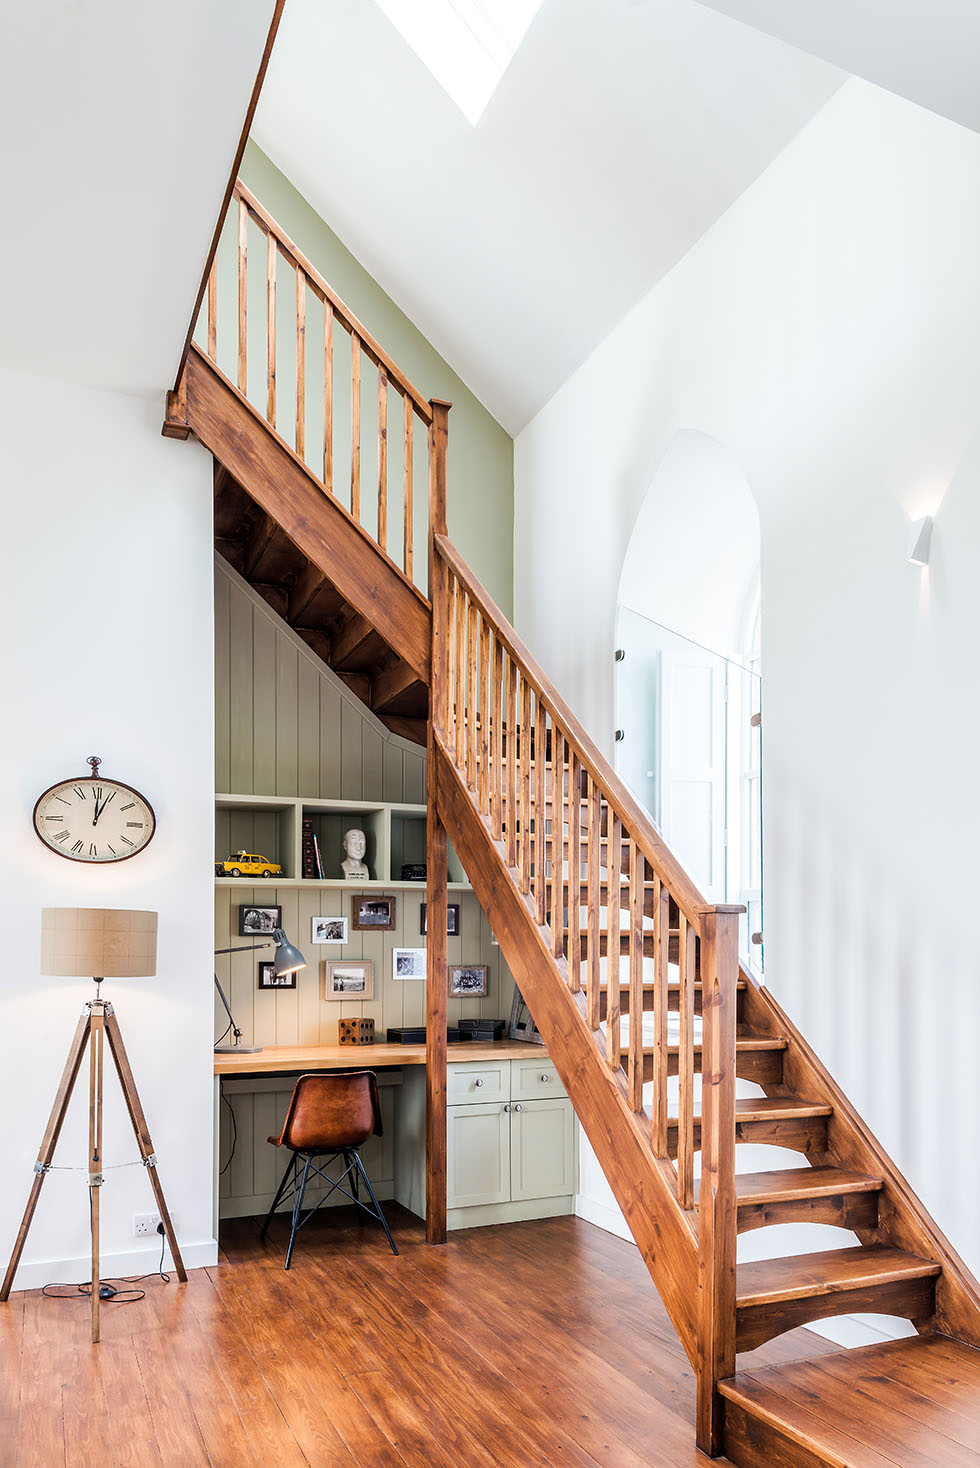 Camenzind-chapel-conversion-office-under-stairs